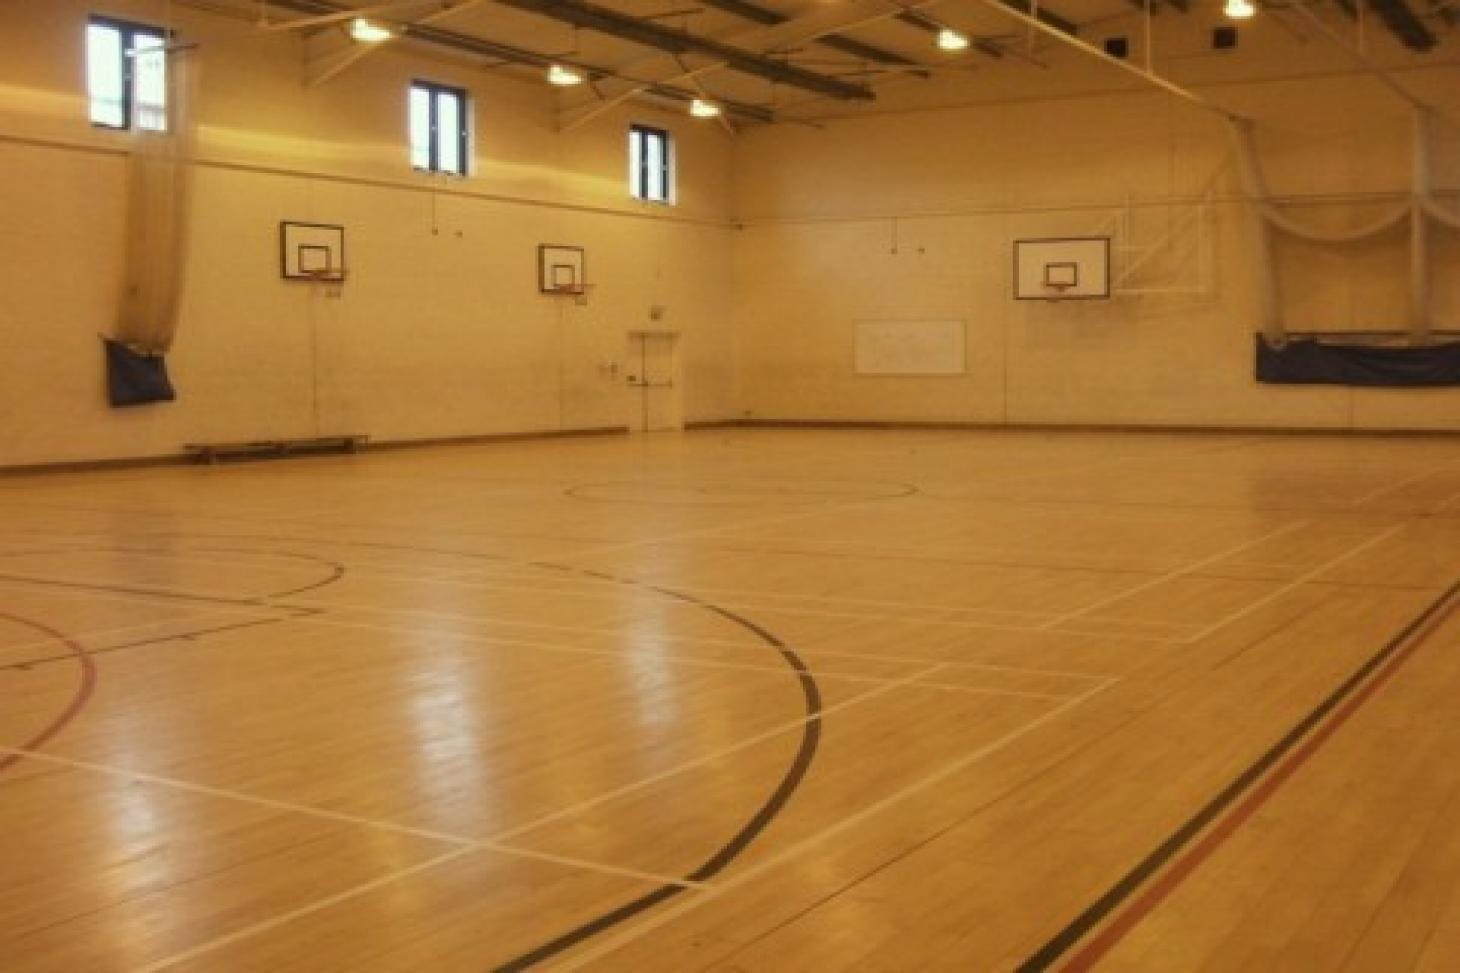 Cleeve Park School Indoor basketball court